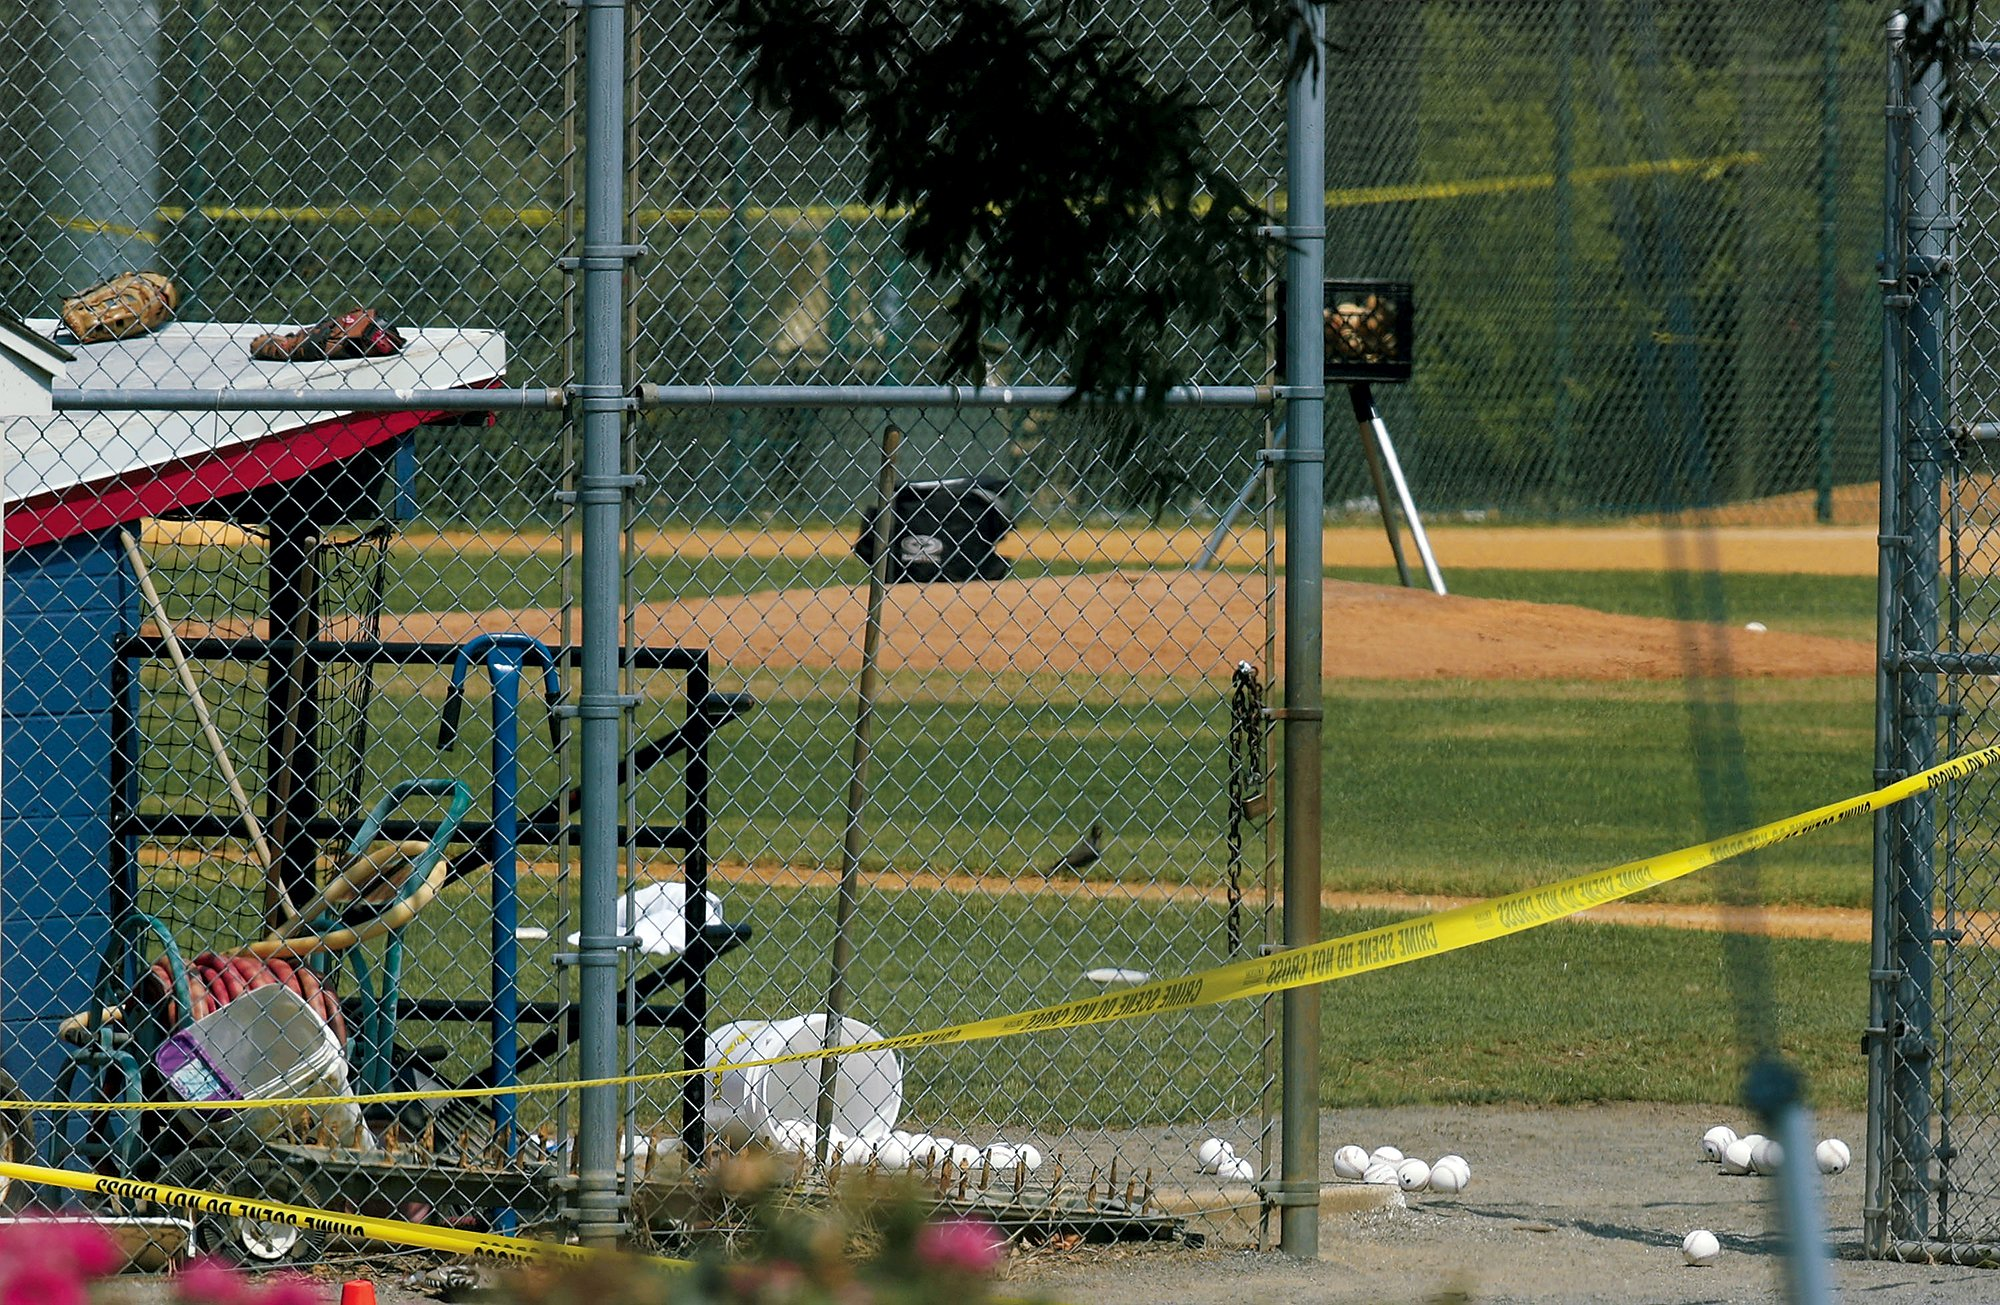 The Terrifying Story of the Congressional Baseball Shooting